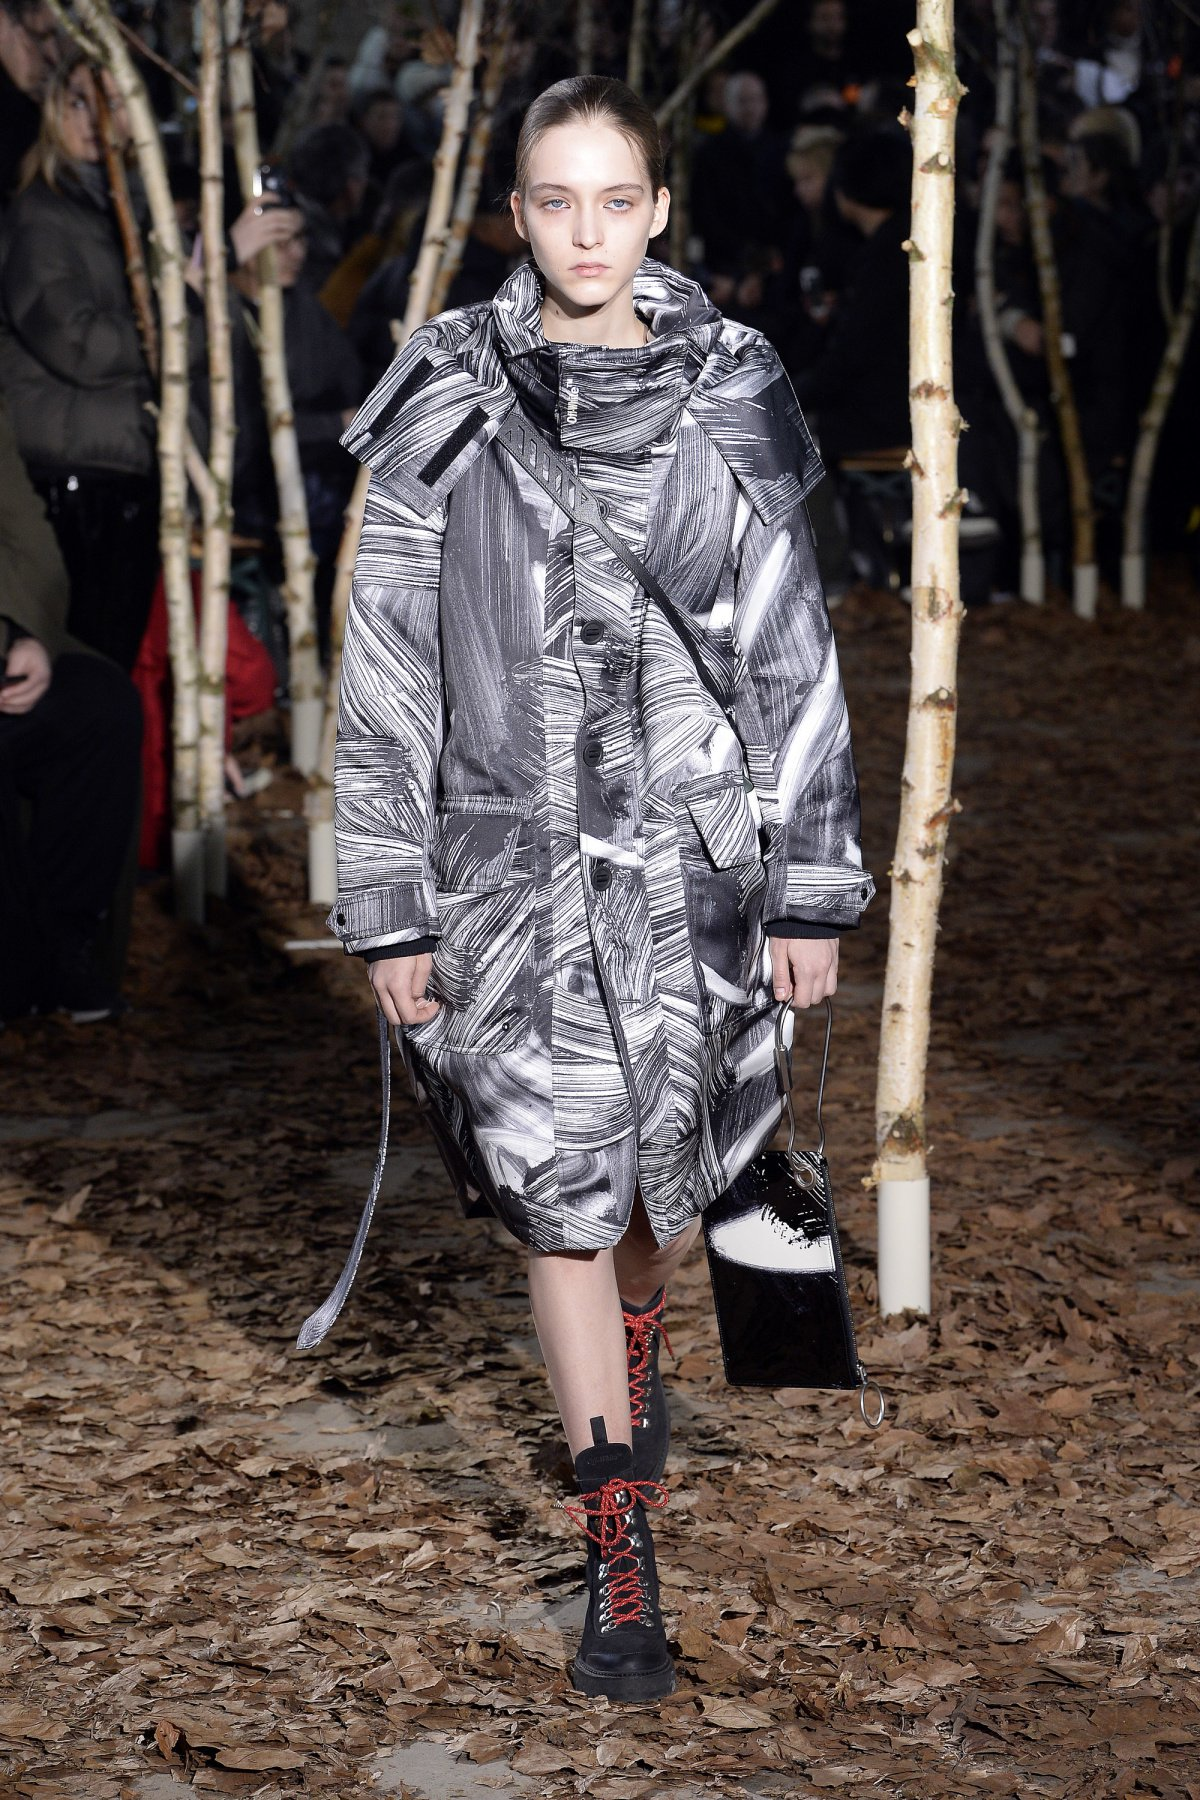 off_white_look_14_2017_aw_mens.jpeg